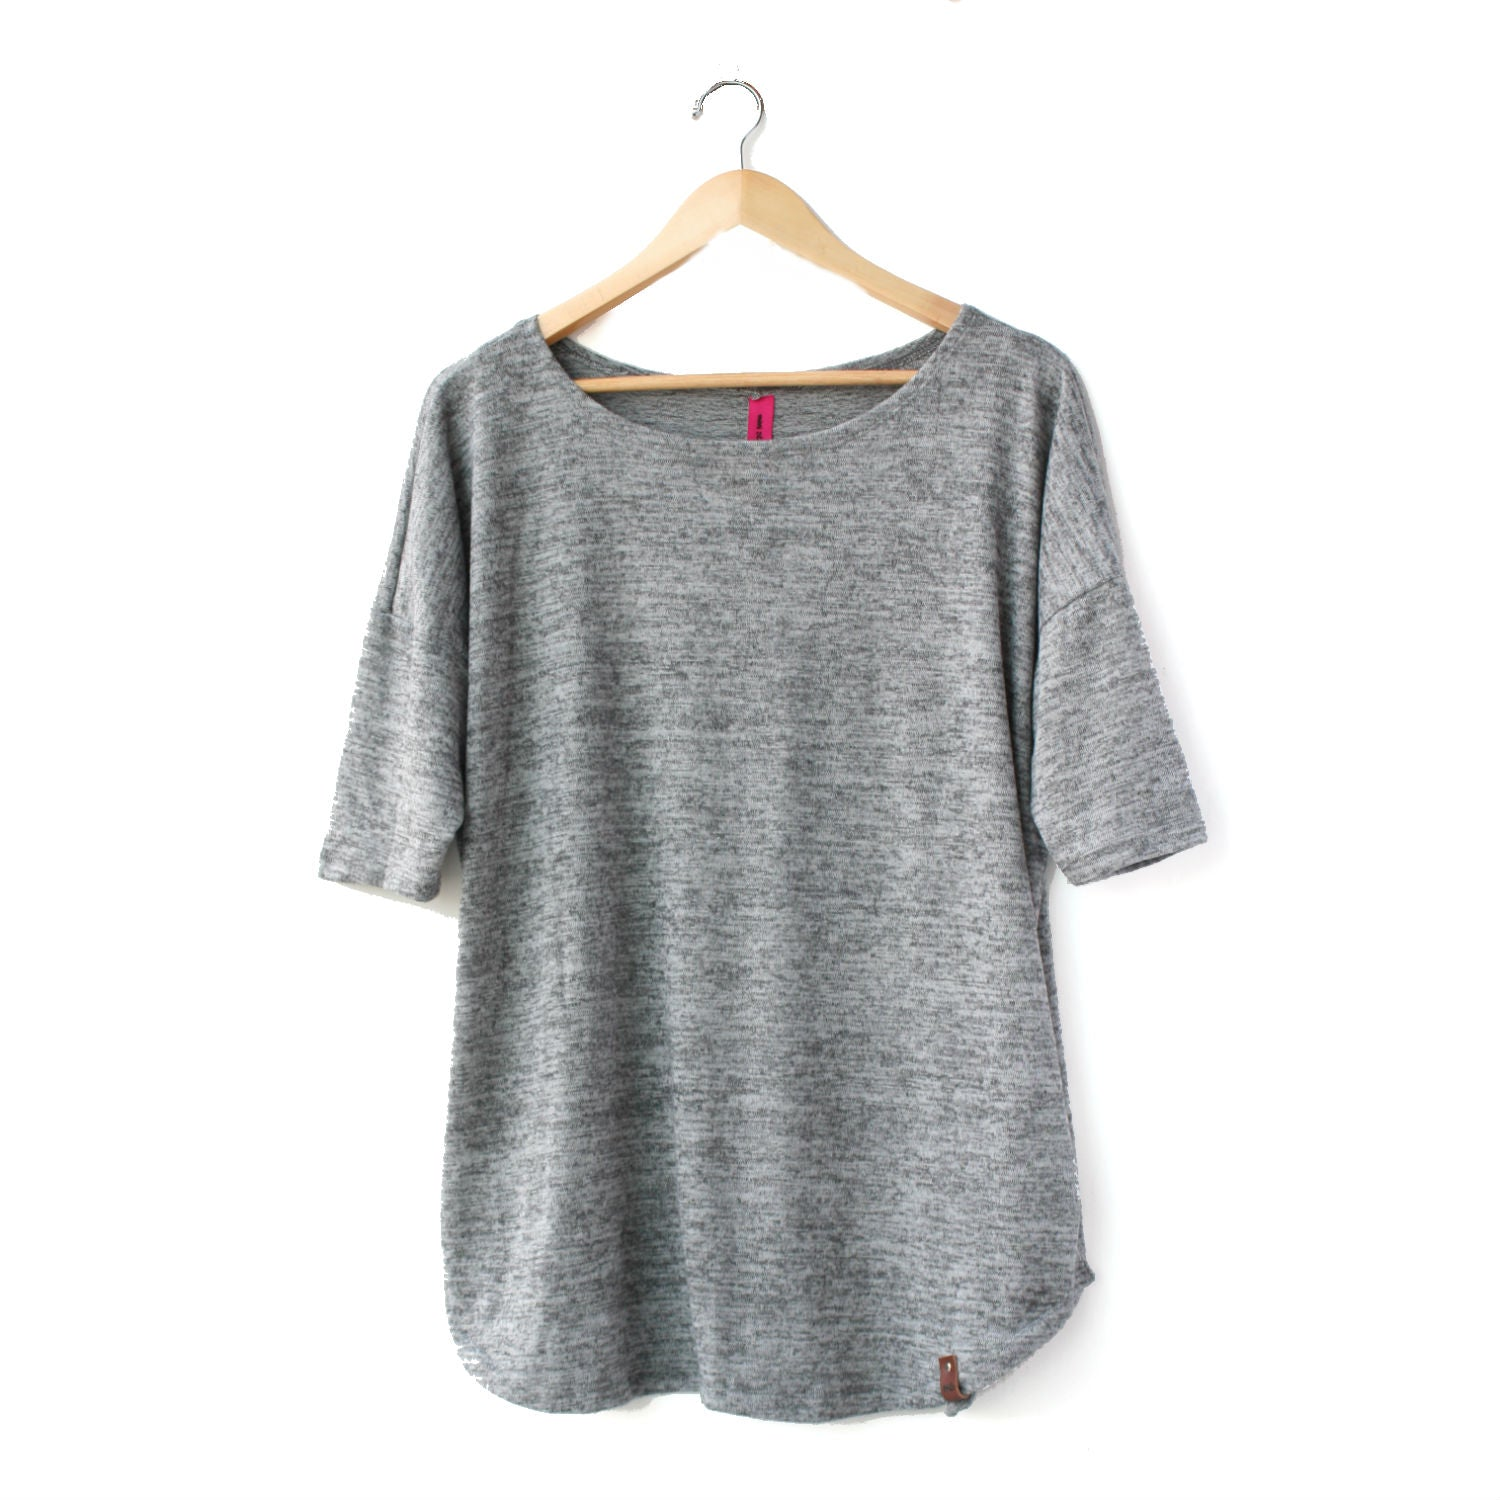 Maisie Womans Sweater - Grey